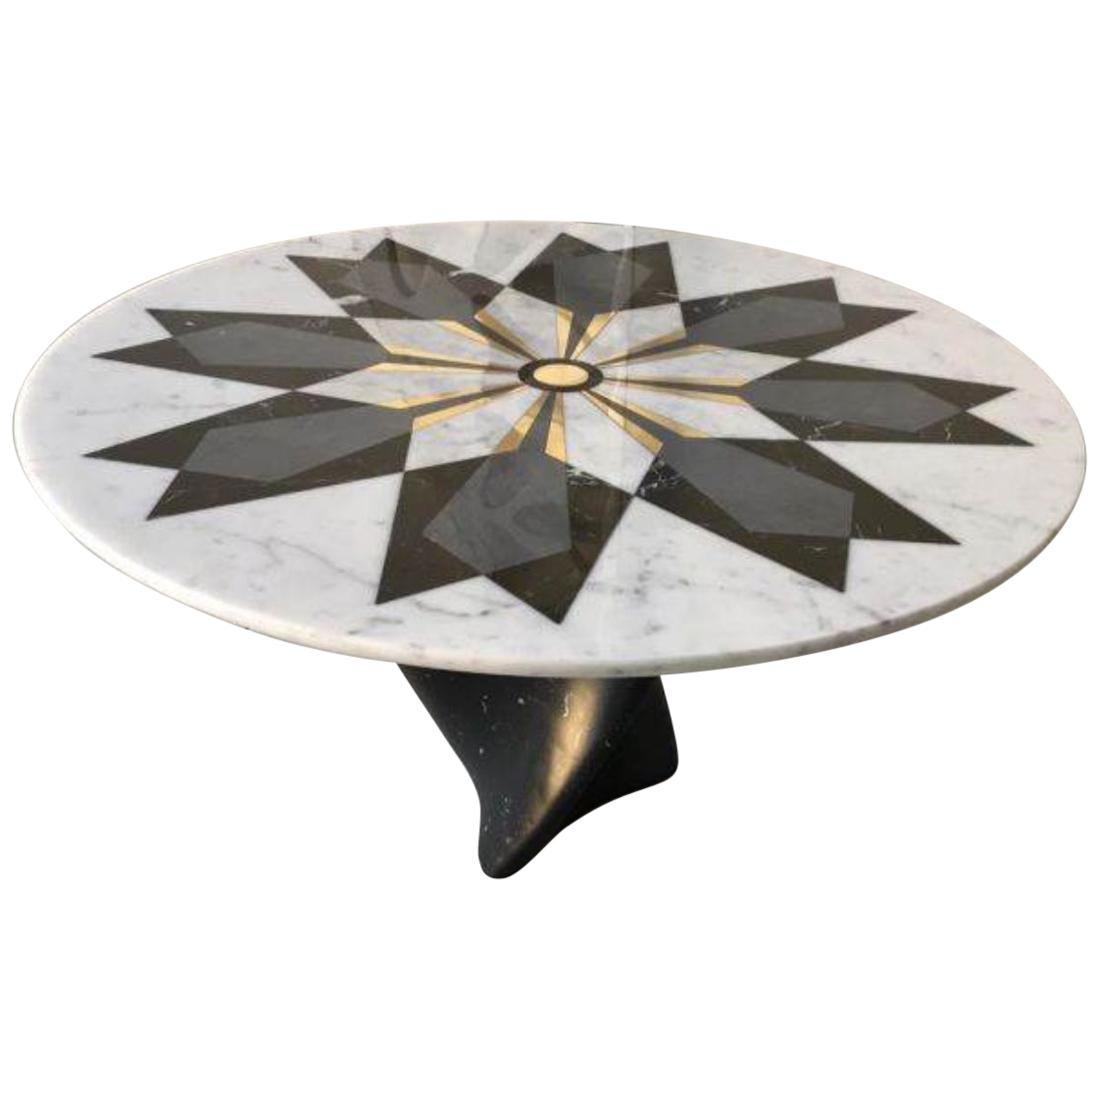 Marble Center Table in Carrara Marble with Inlay design in brass